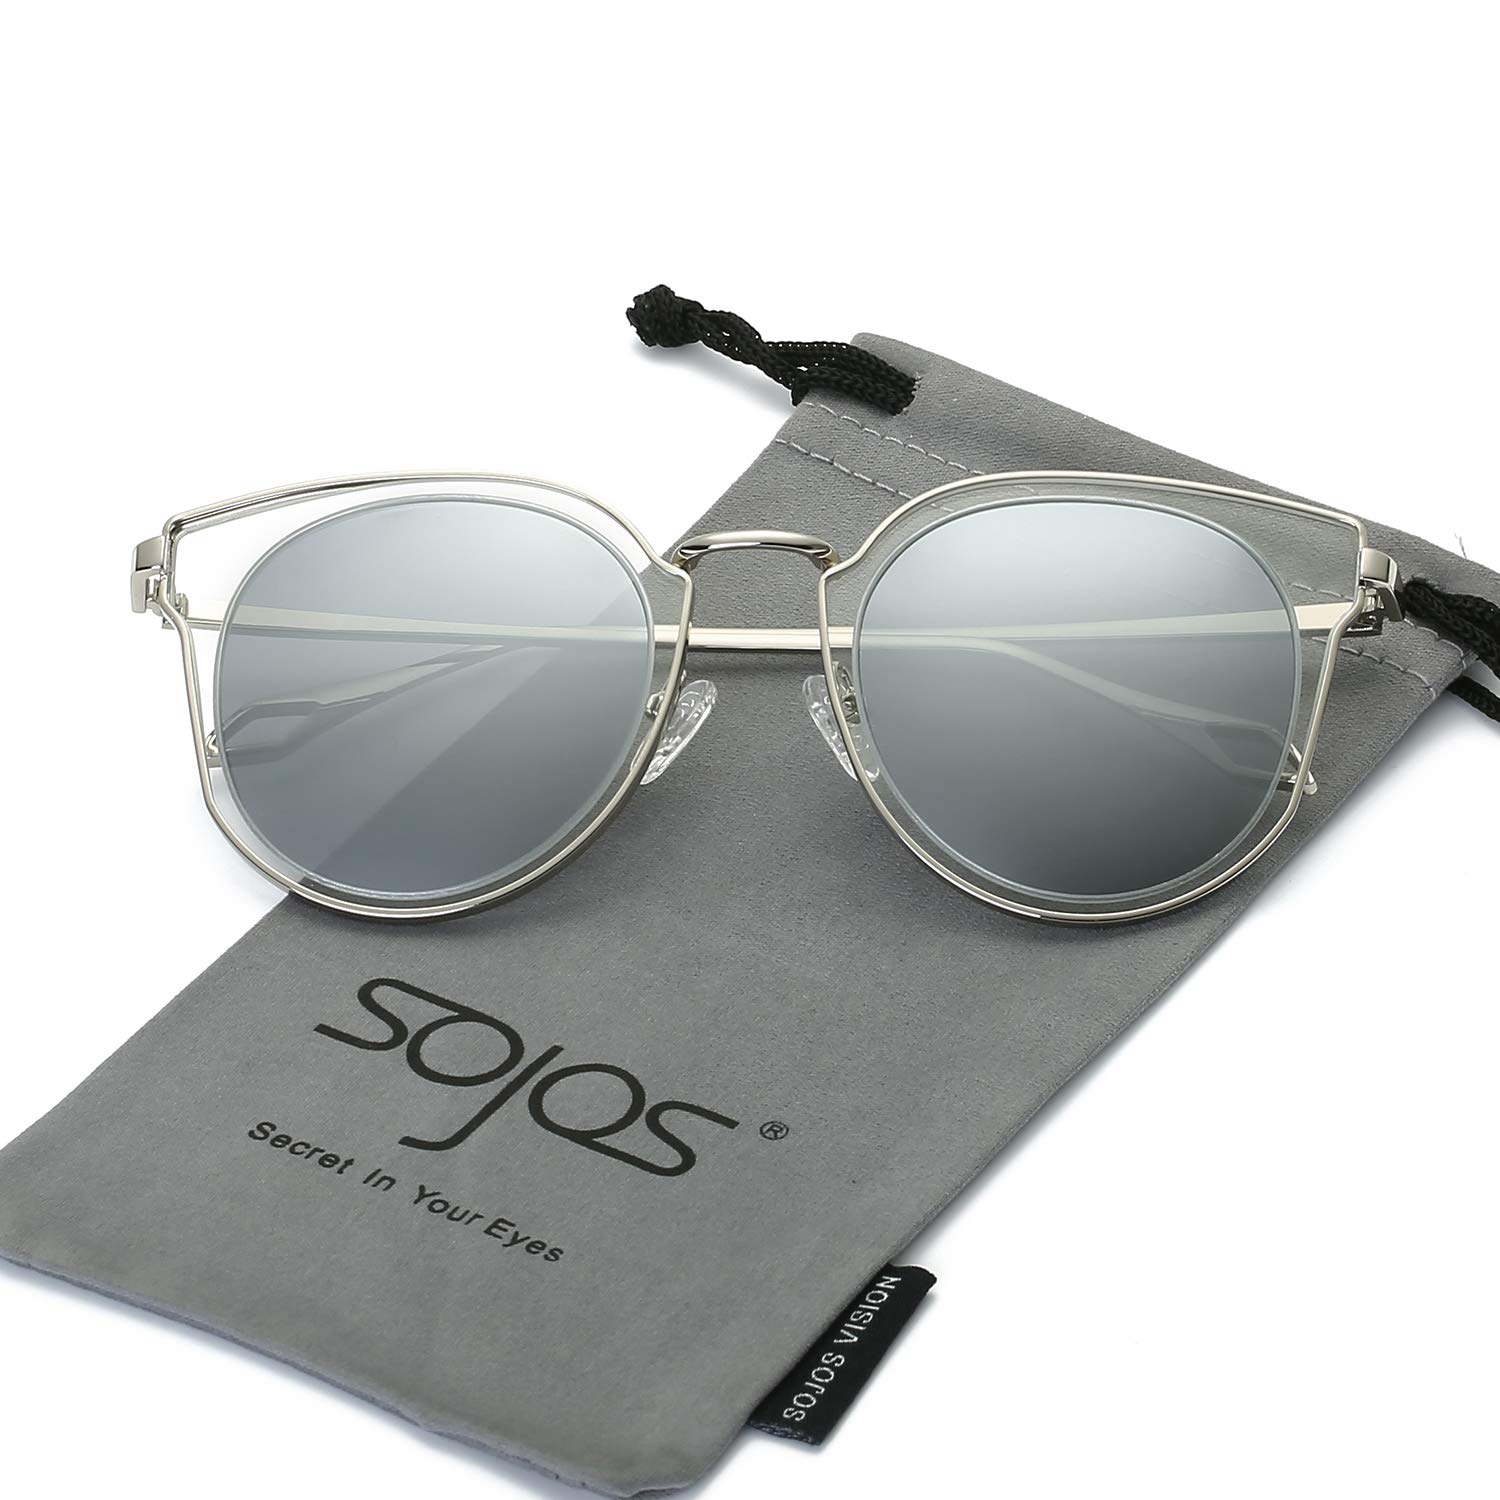 90f04f6db6 SOJOS Fashion Polarized Sunglasses for Women UV400 Mirrored Lens SJ1057  with Silver Frame Crystal Silver Mirrored